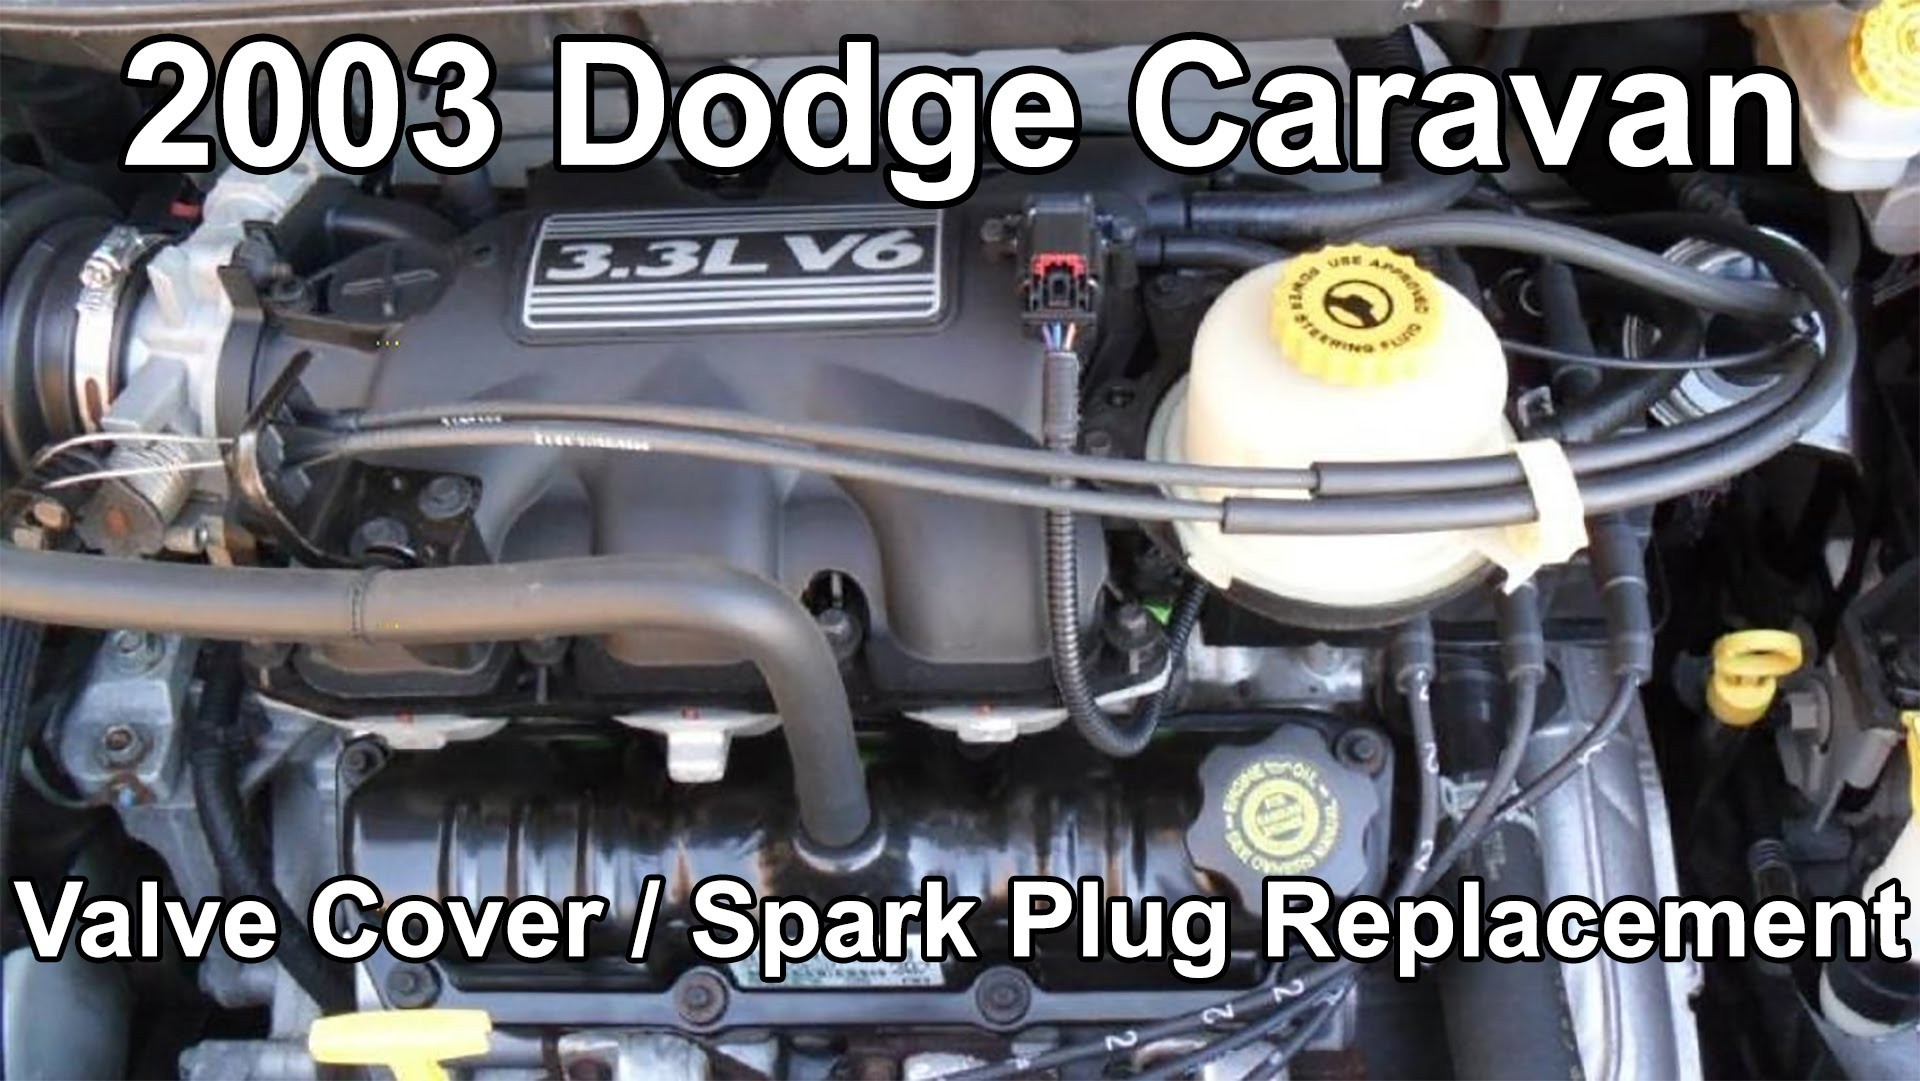 2005 chrysler town and country engine diagram 2003 dodge caravan 3 3 plugs and valve cover gasket change of 2005 chrysler town and country engine diagram 2005 chrysler town and country engine diagram chrysler pacifica